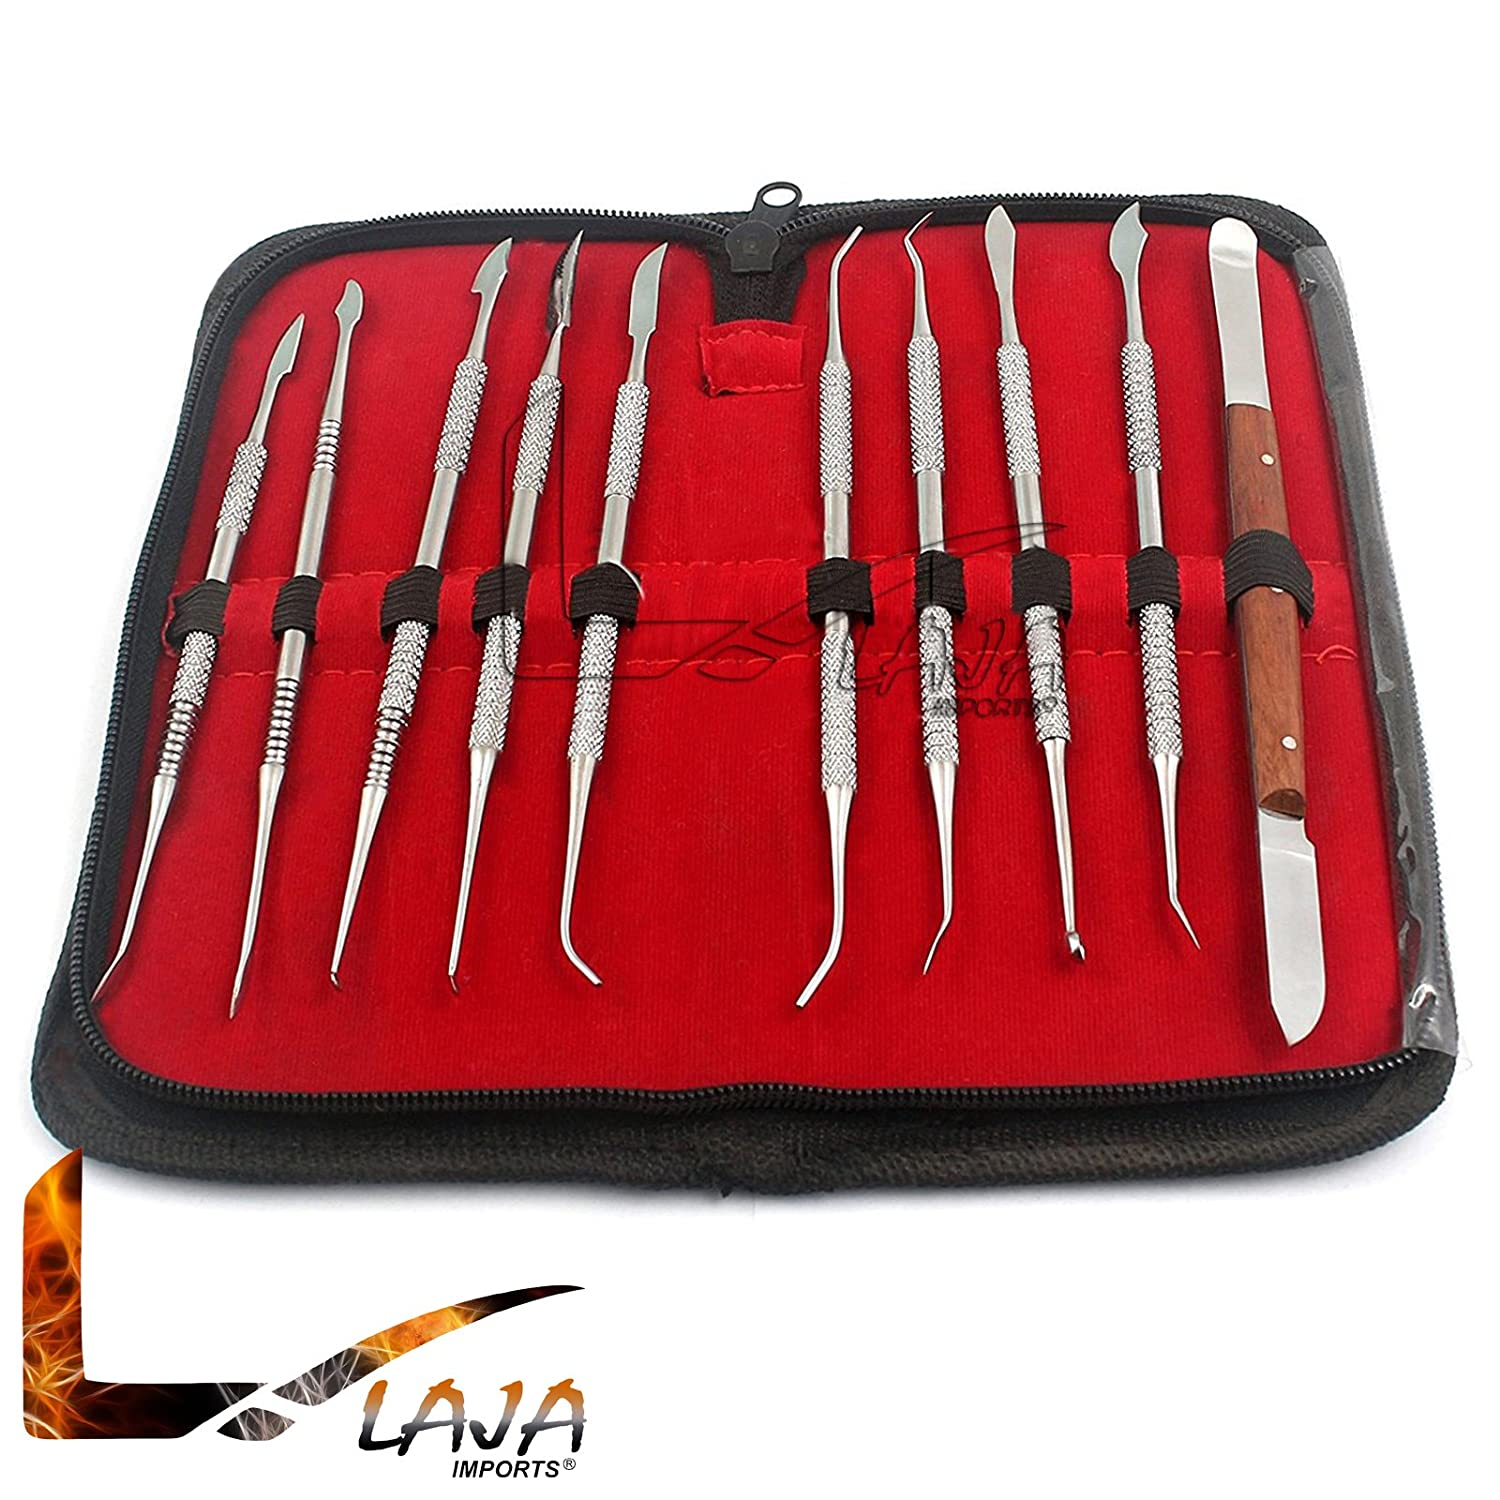 LAJA IMPORTS Stainless Steel Wax Carving Tool Set - Medic Dental Instrument KIT